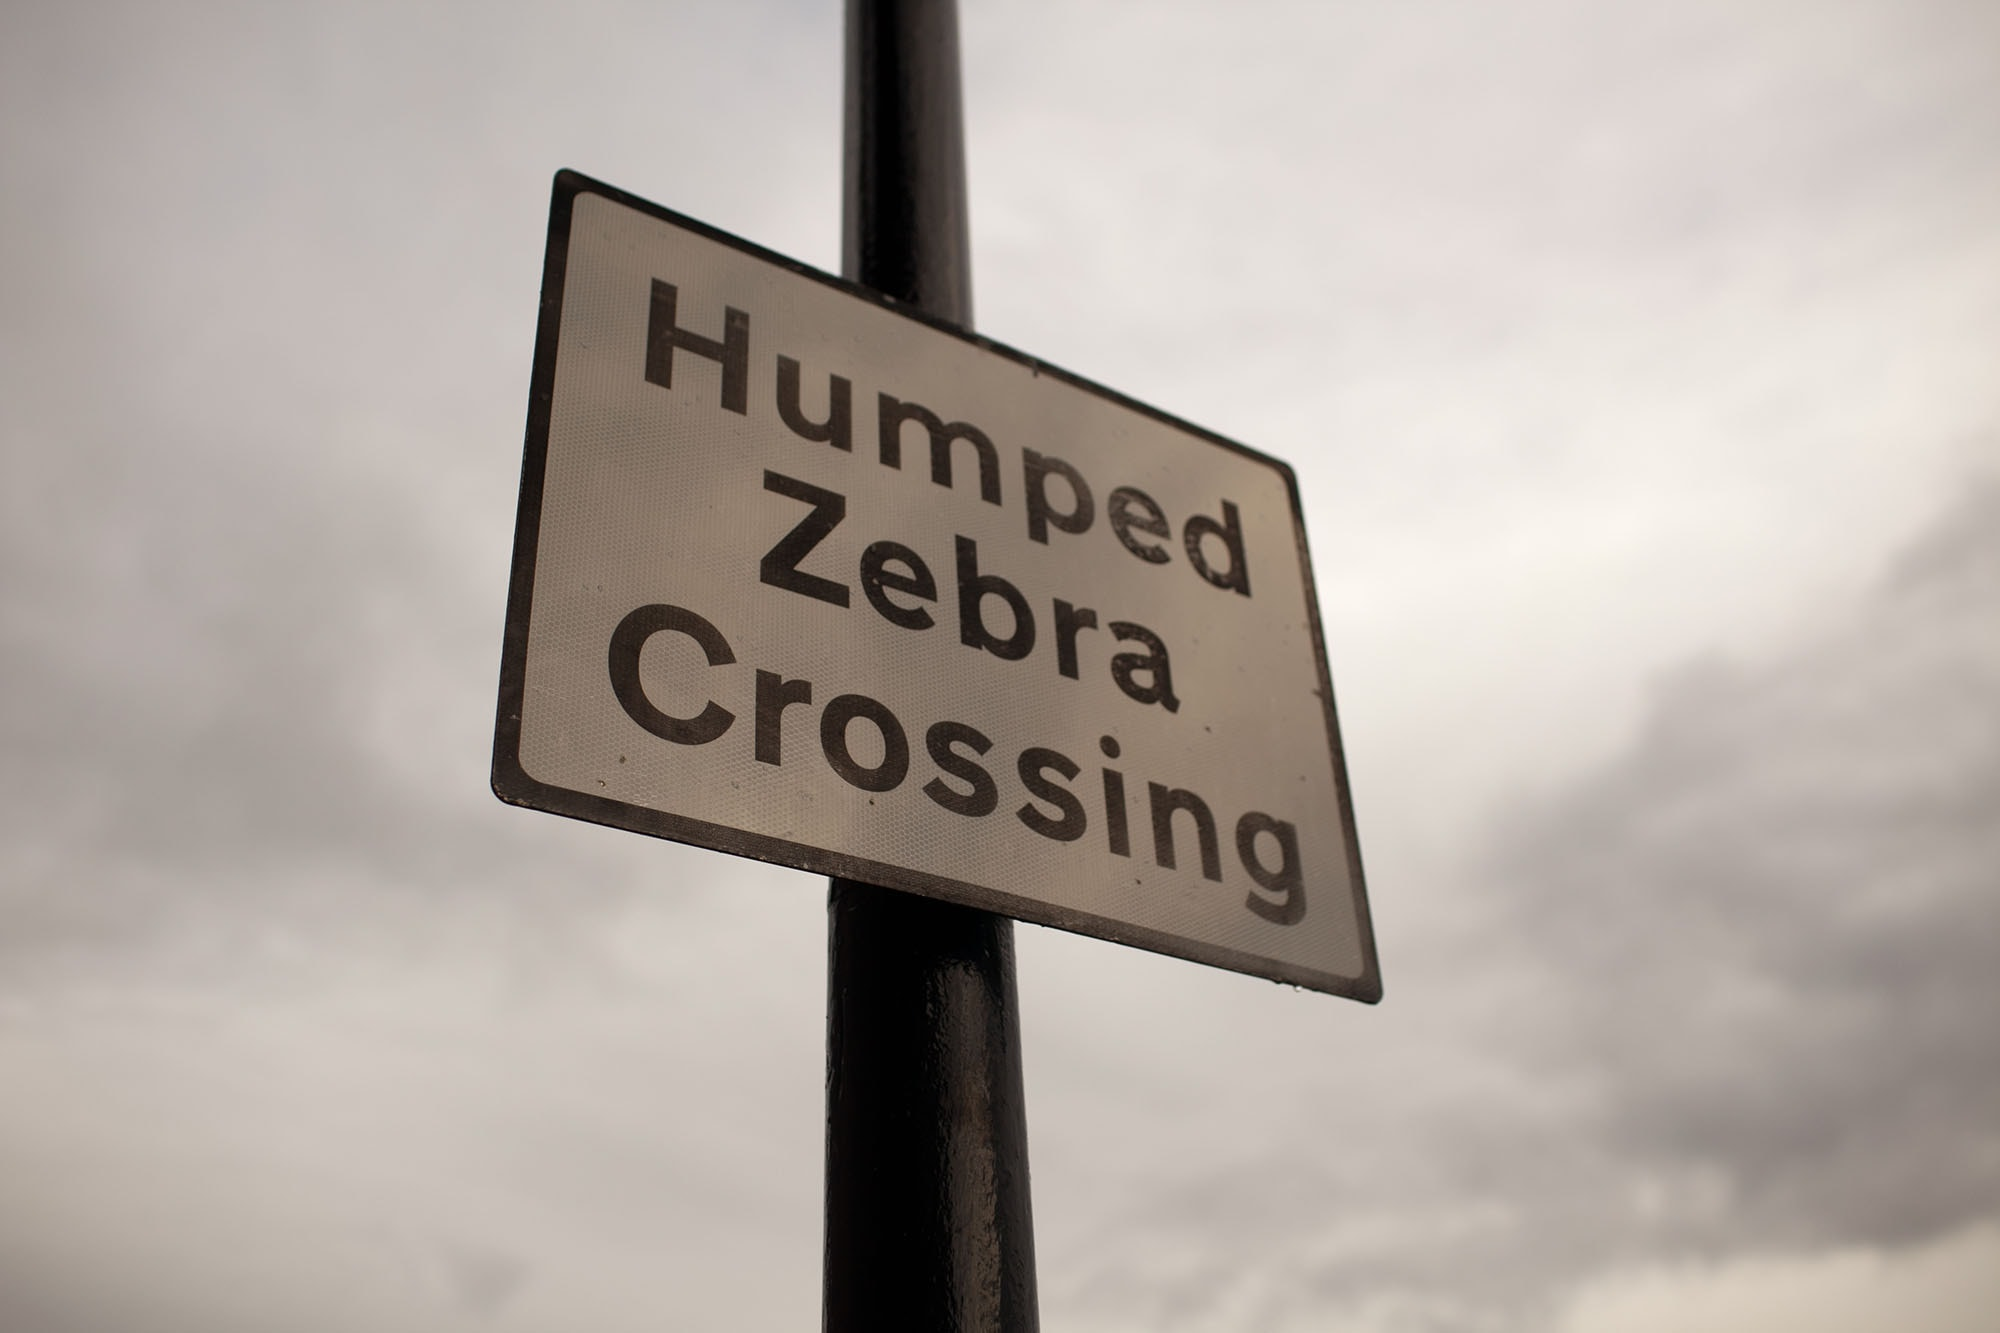 Humped Zebra Crossing sign in Liverpool, England